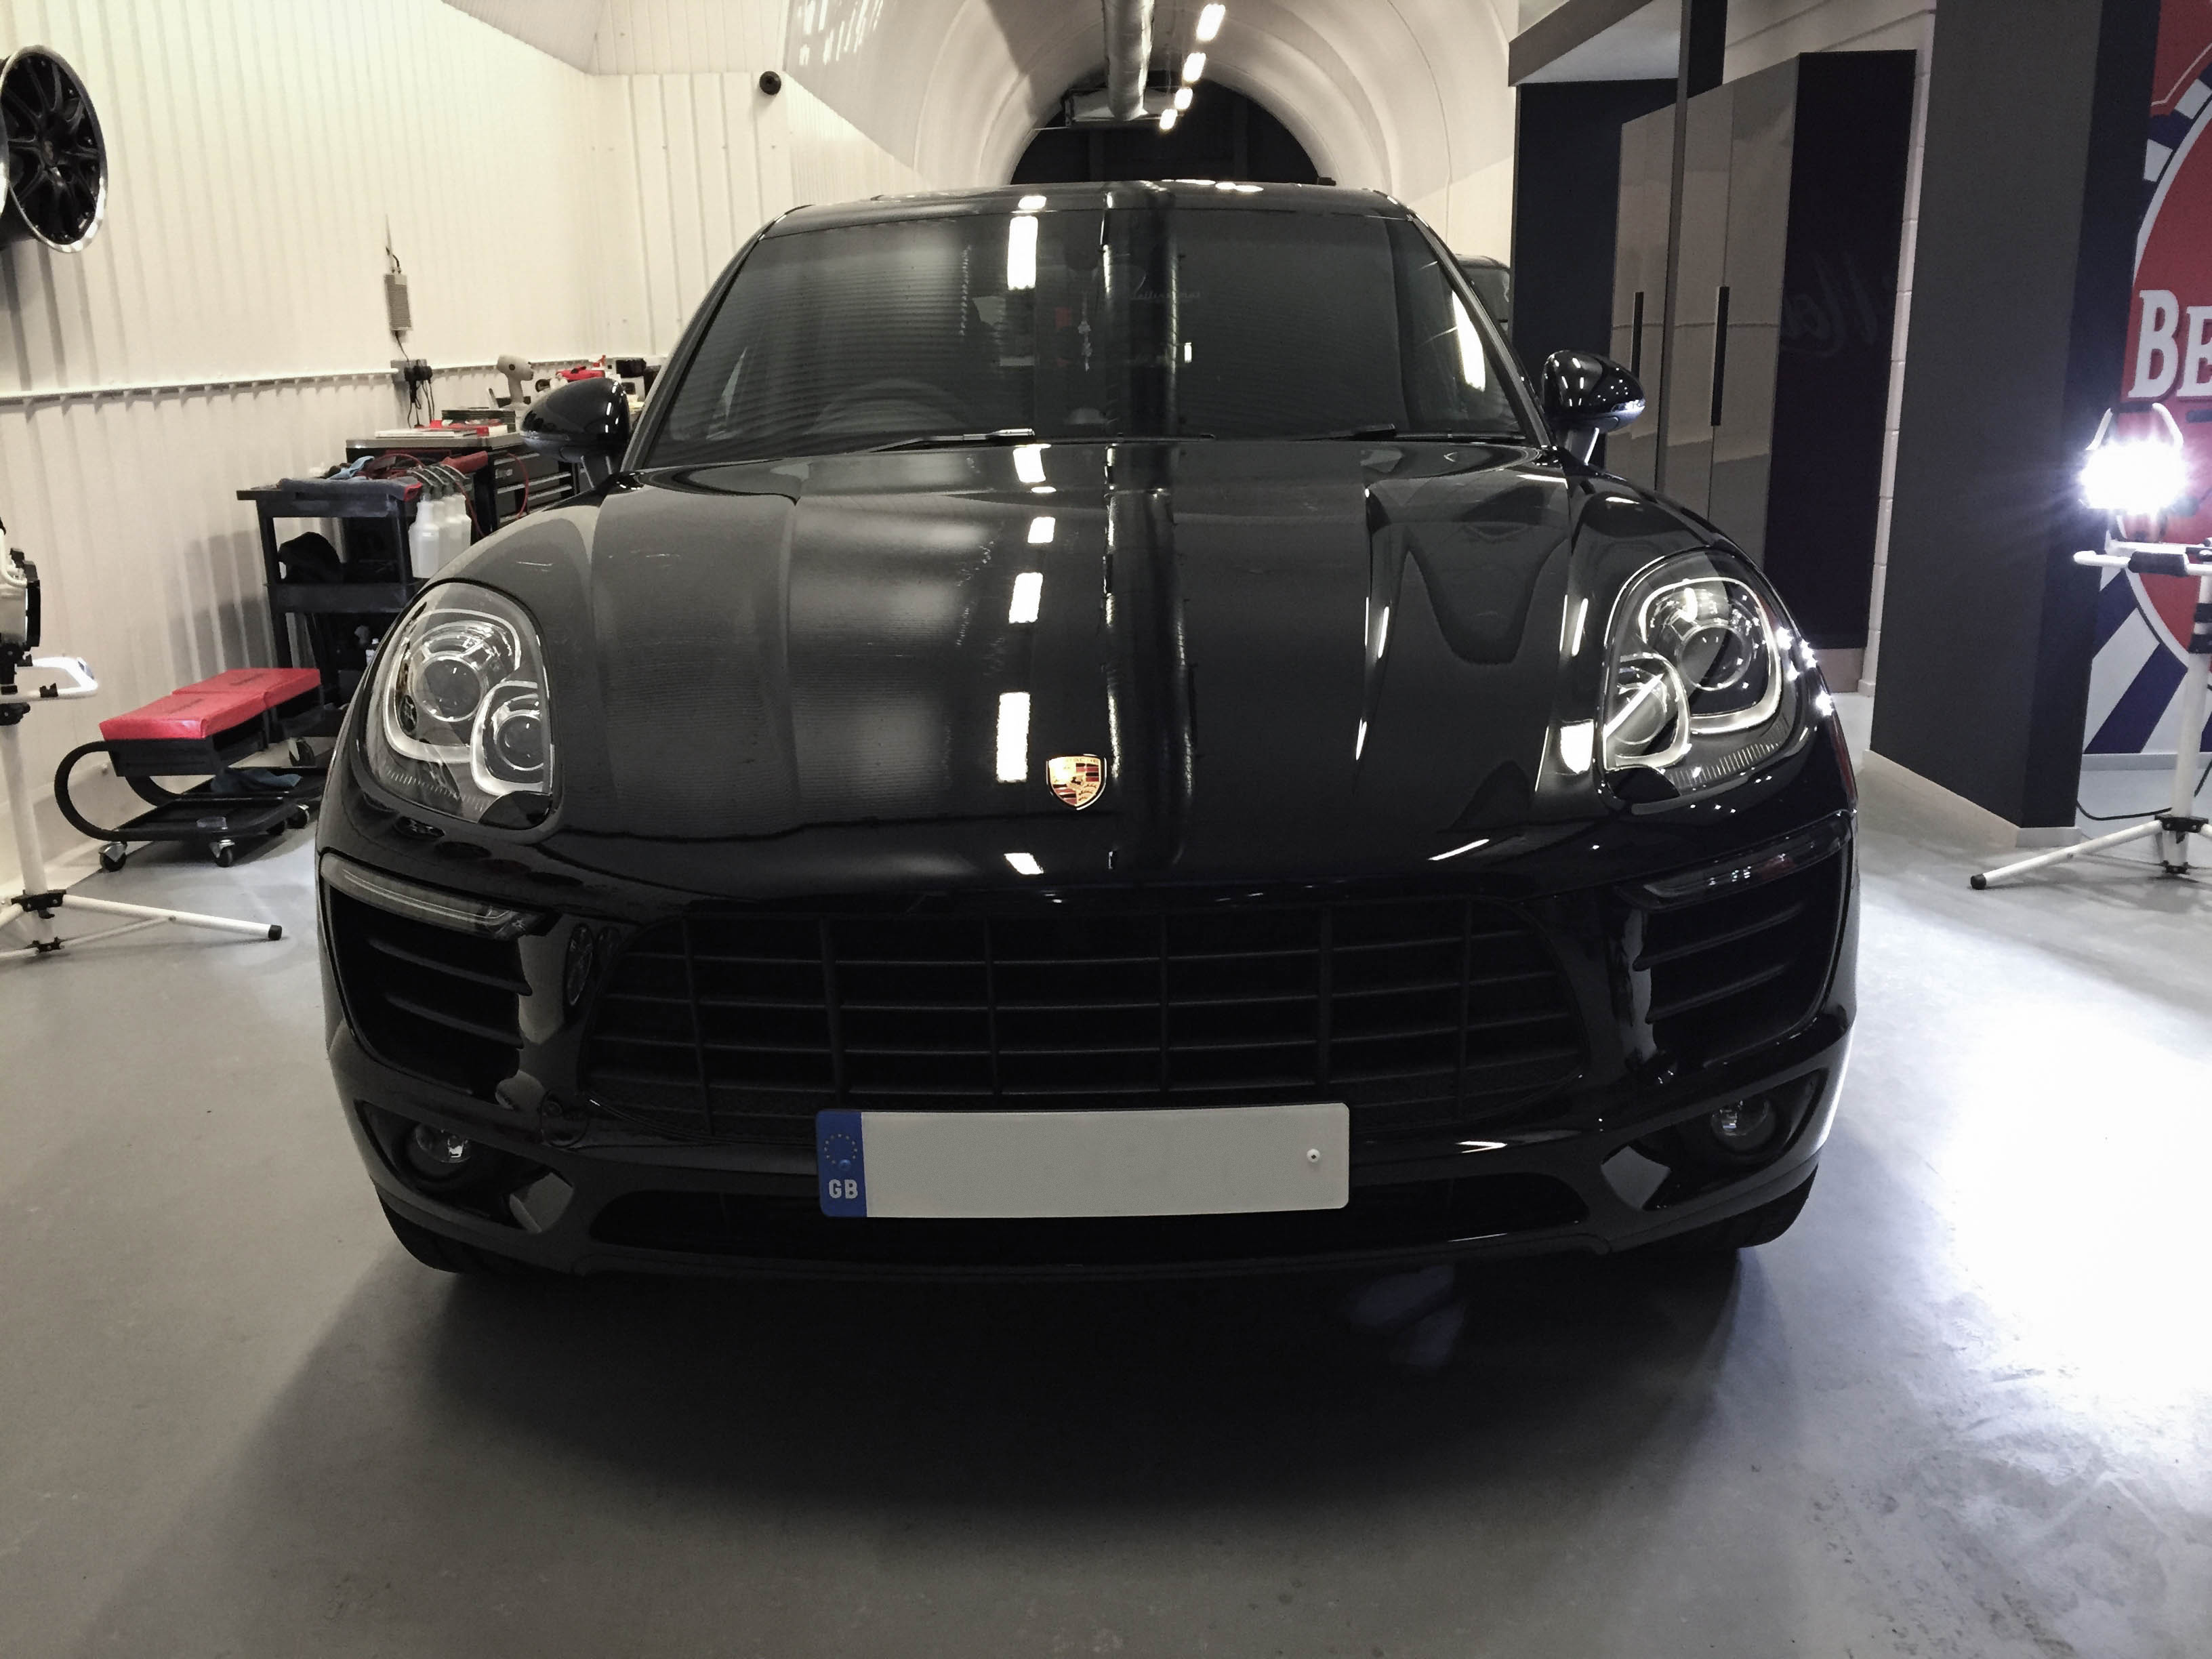 Porsche Macan – Head on